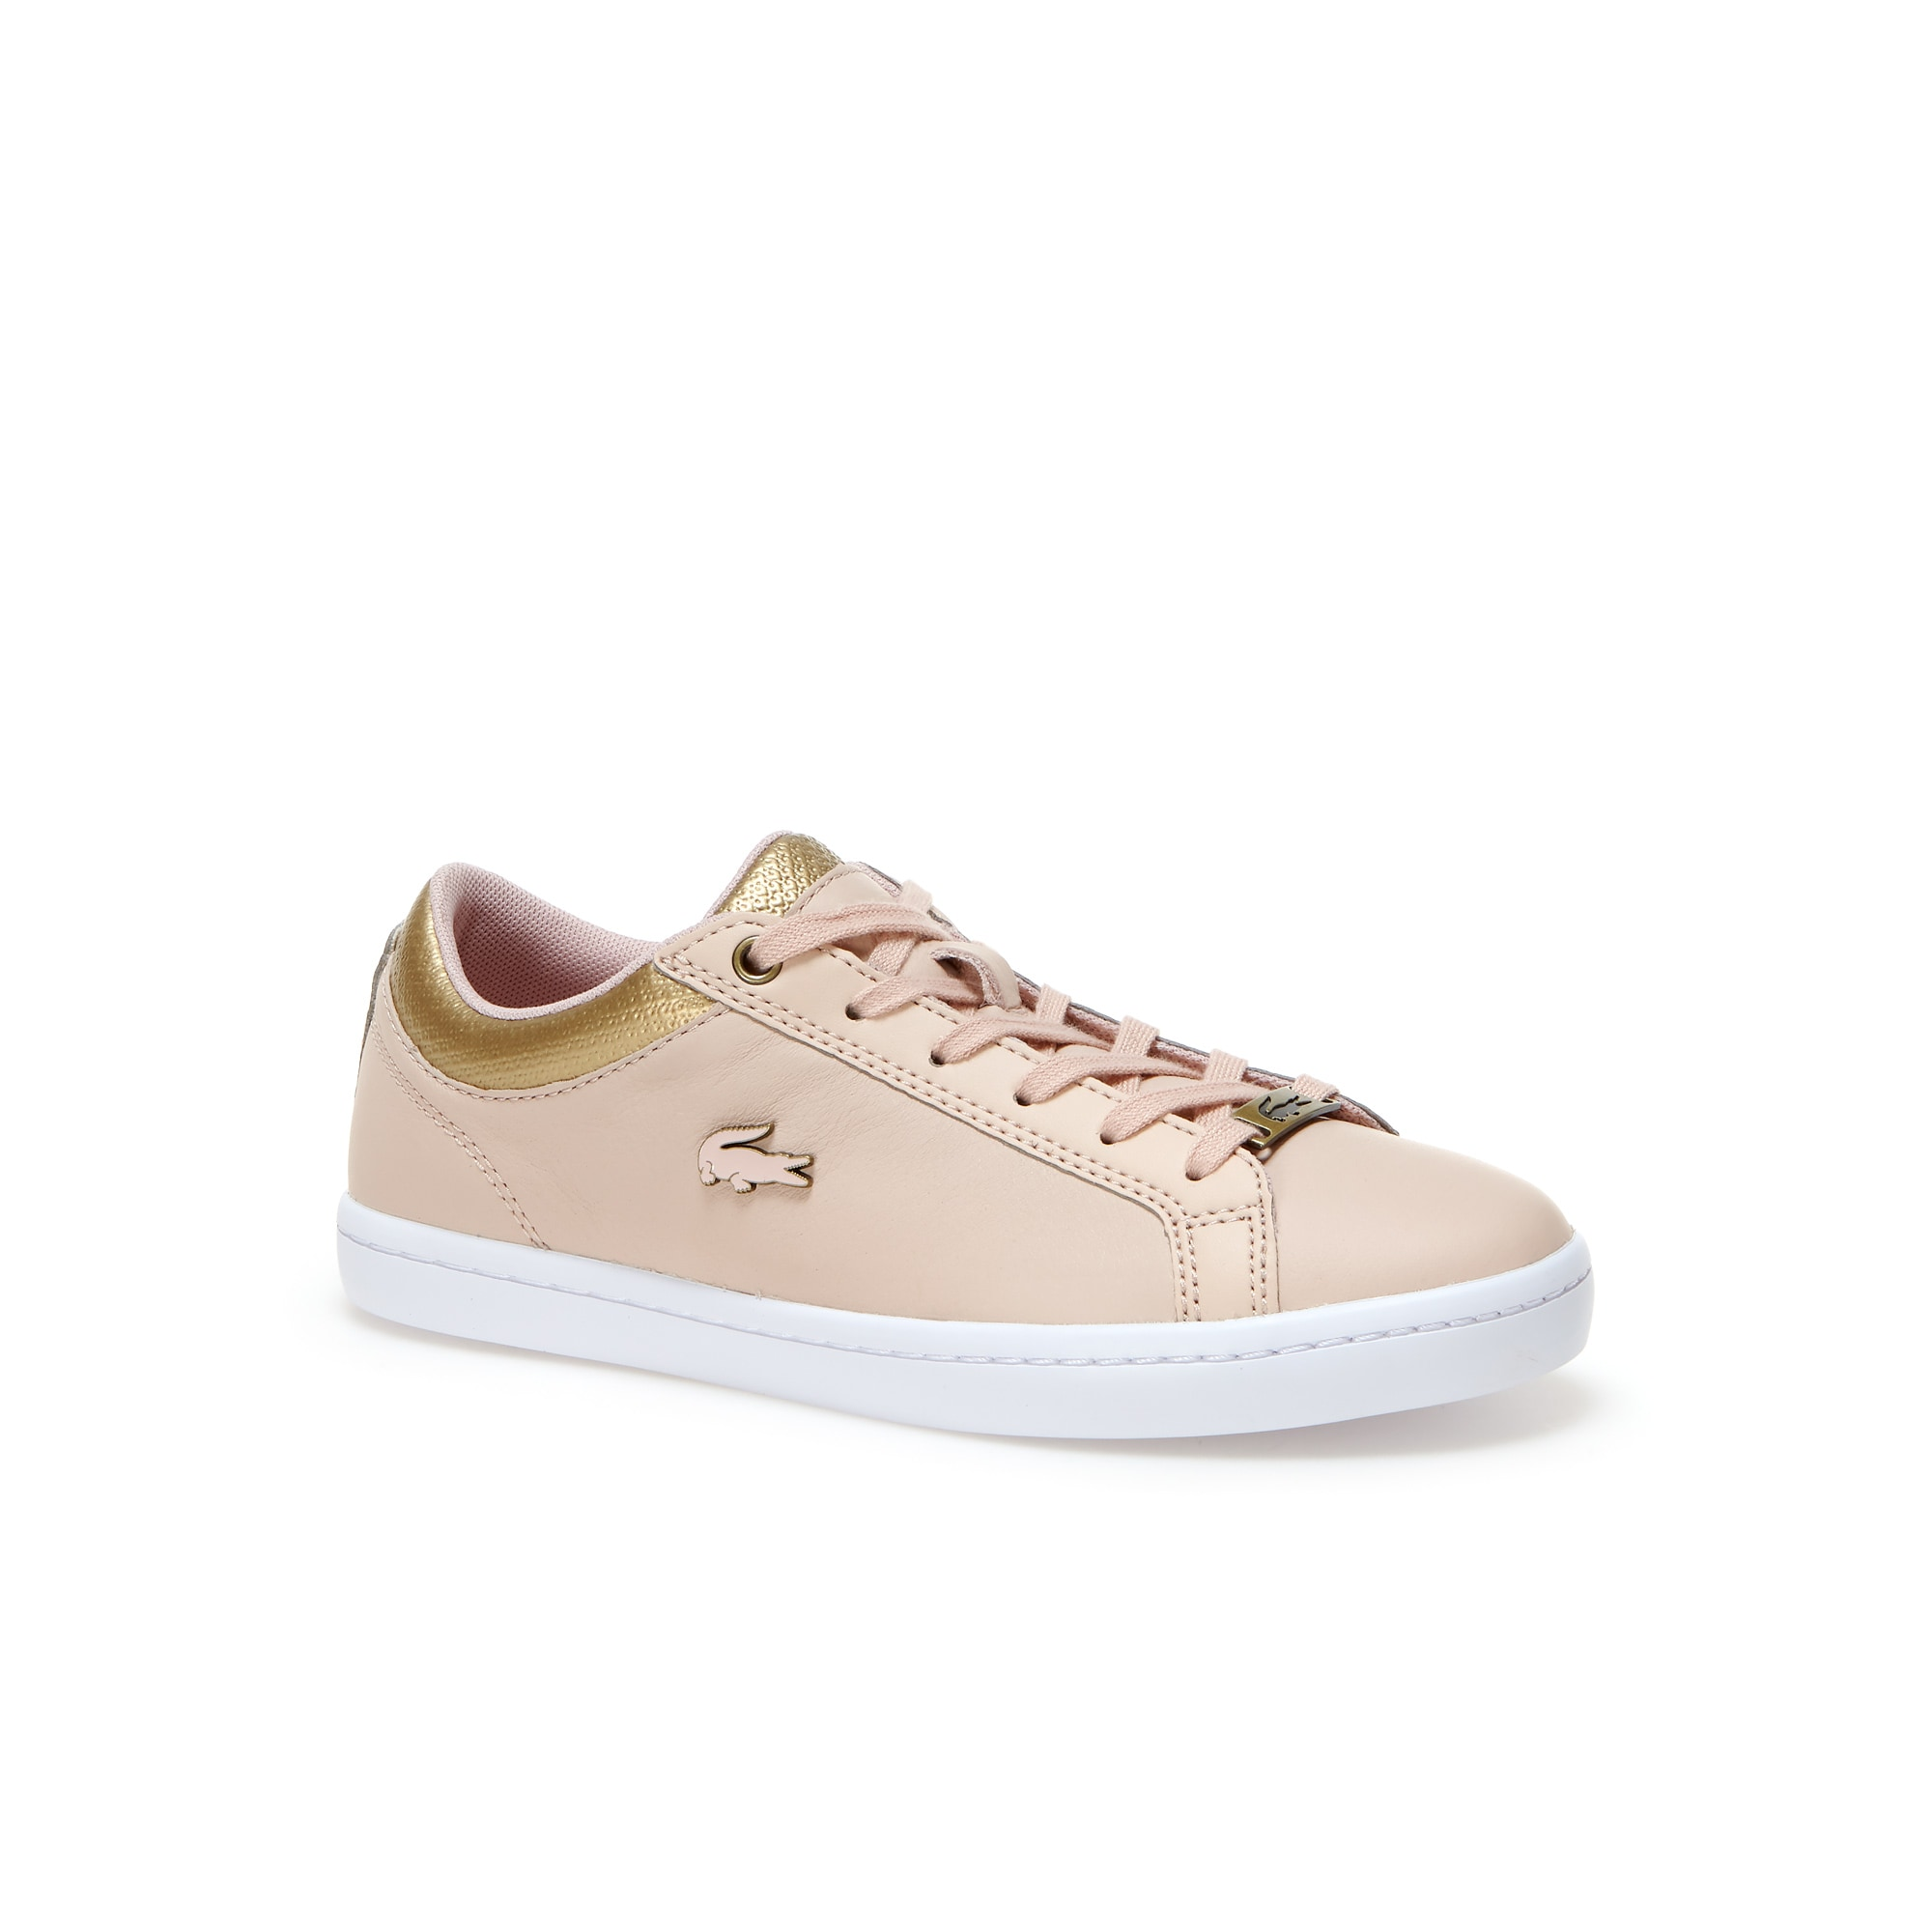 Sneakers Straightset in pelle bottalata